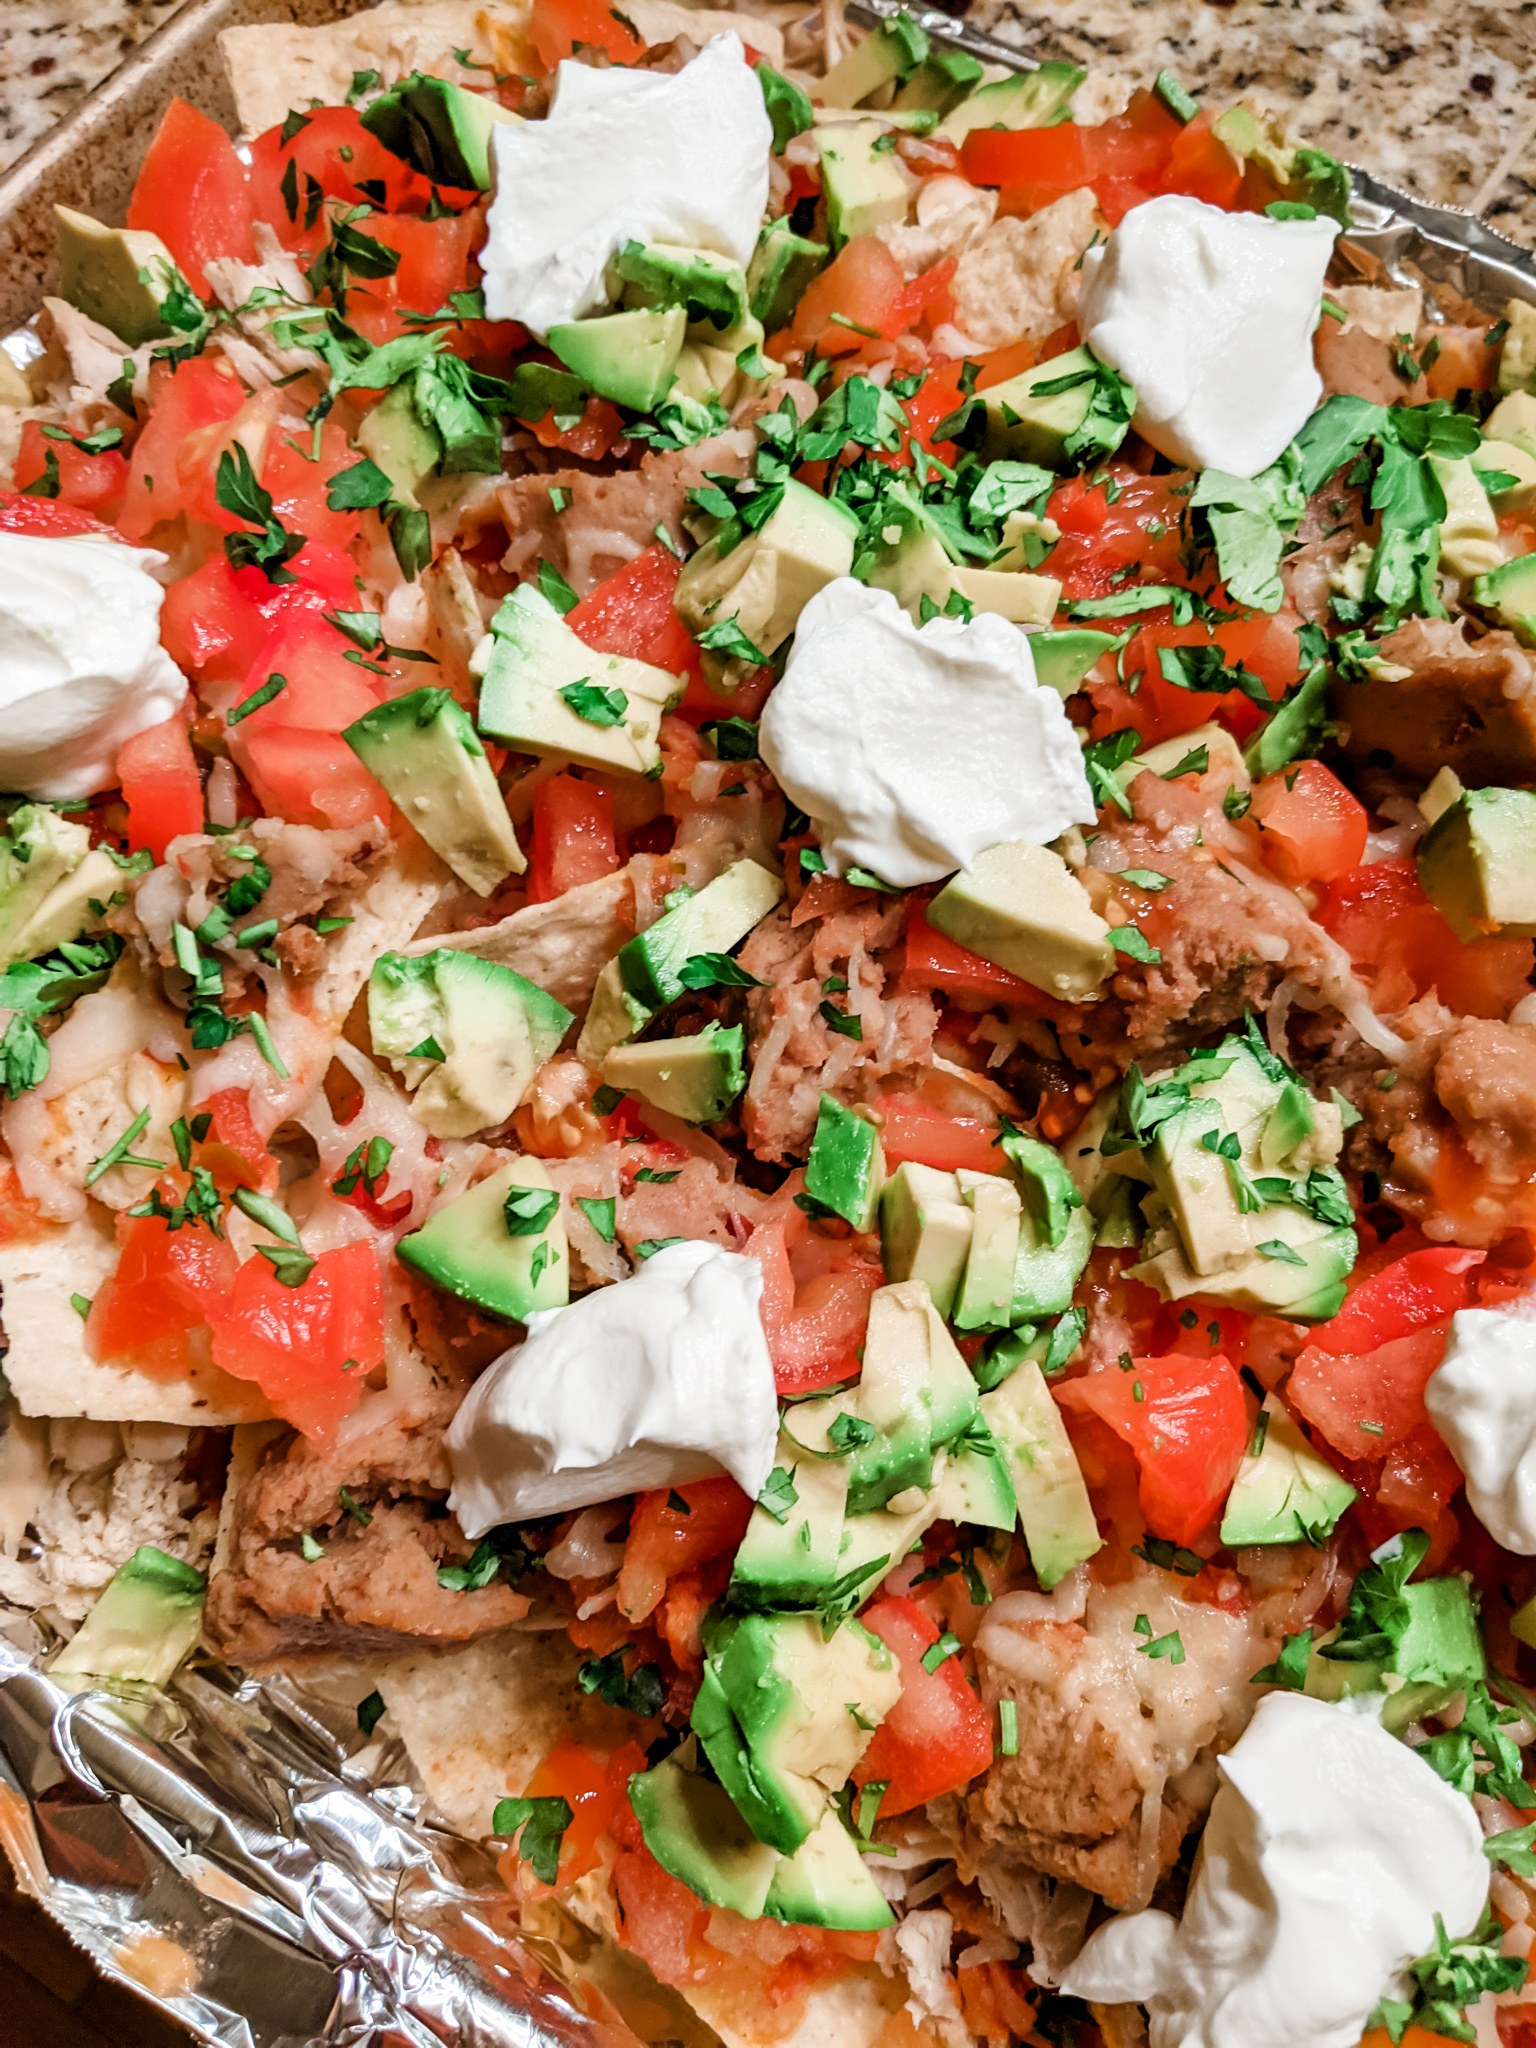 A tray full of the chicken nachos.